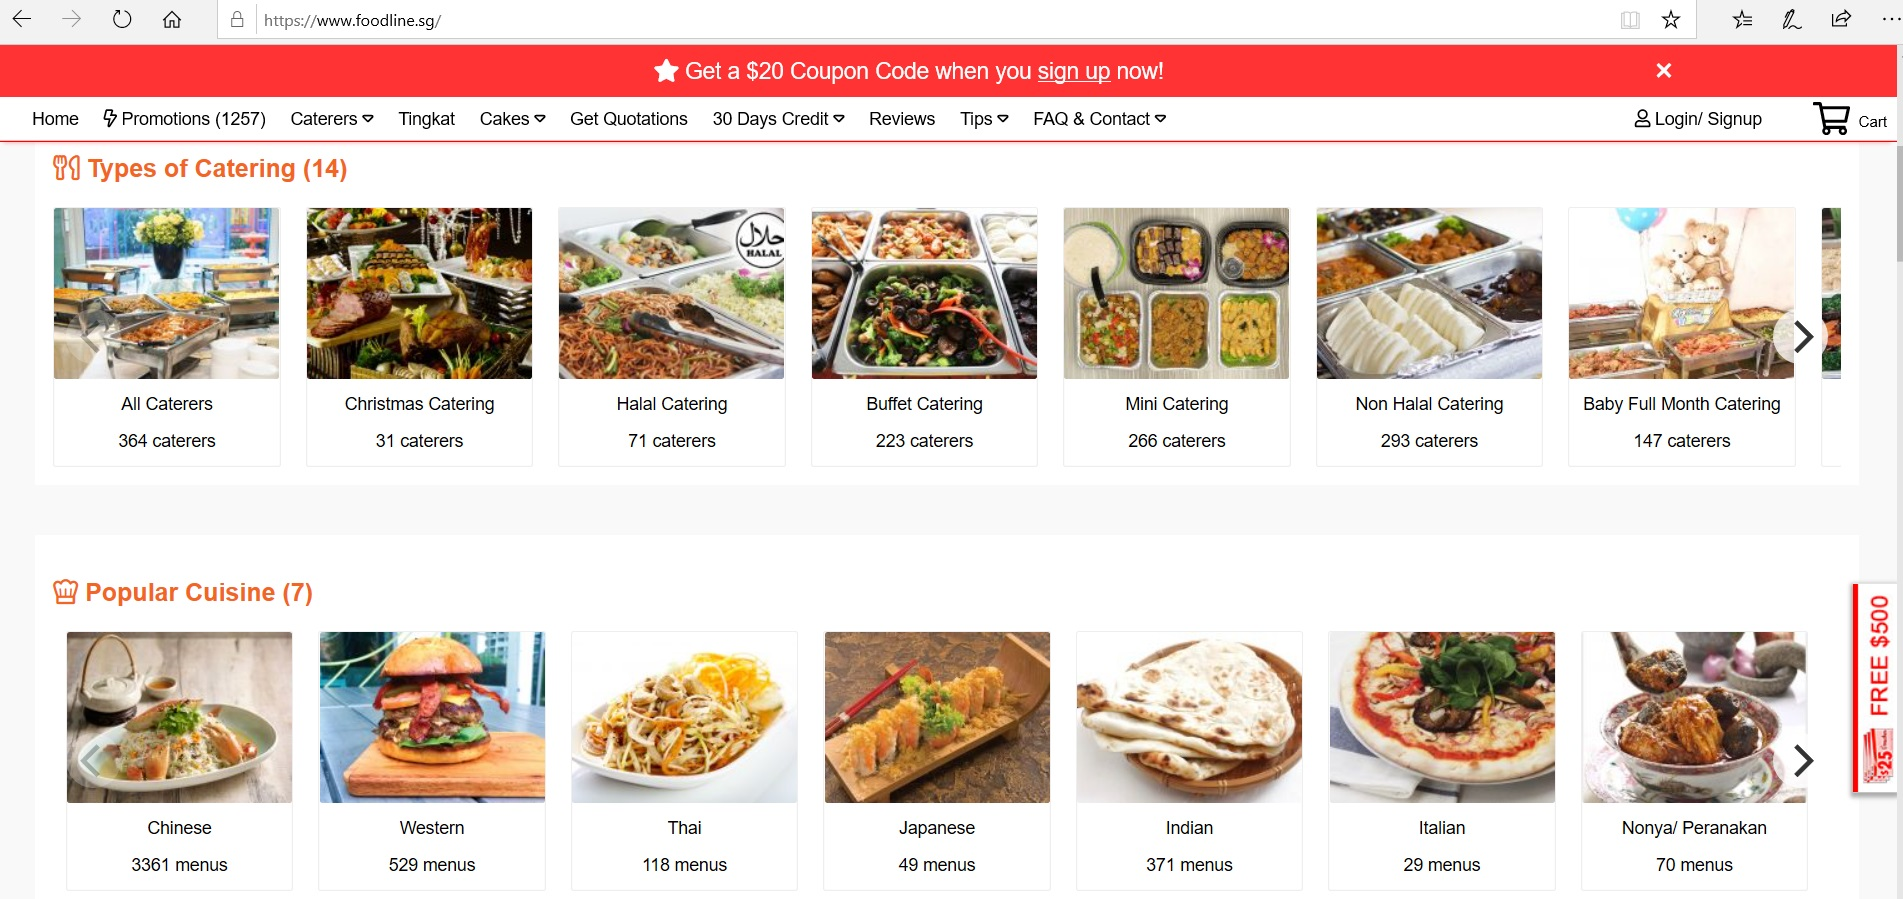 Catalogue of catering types and popular cuisines.